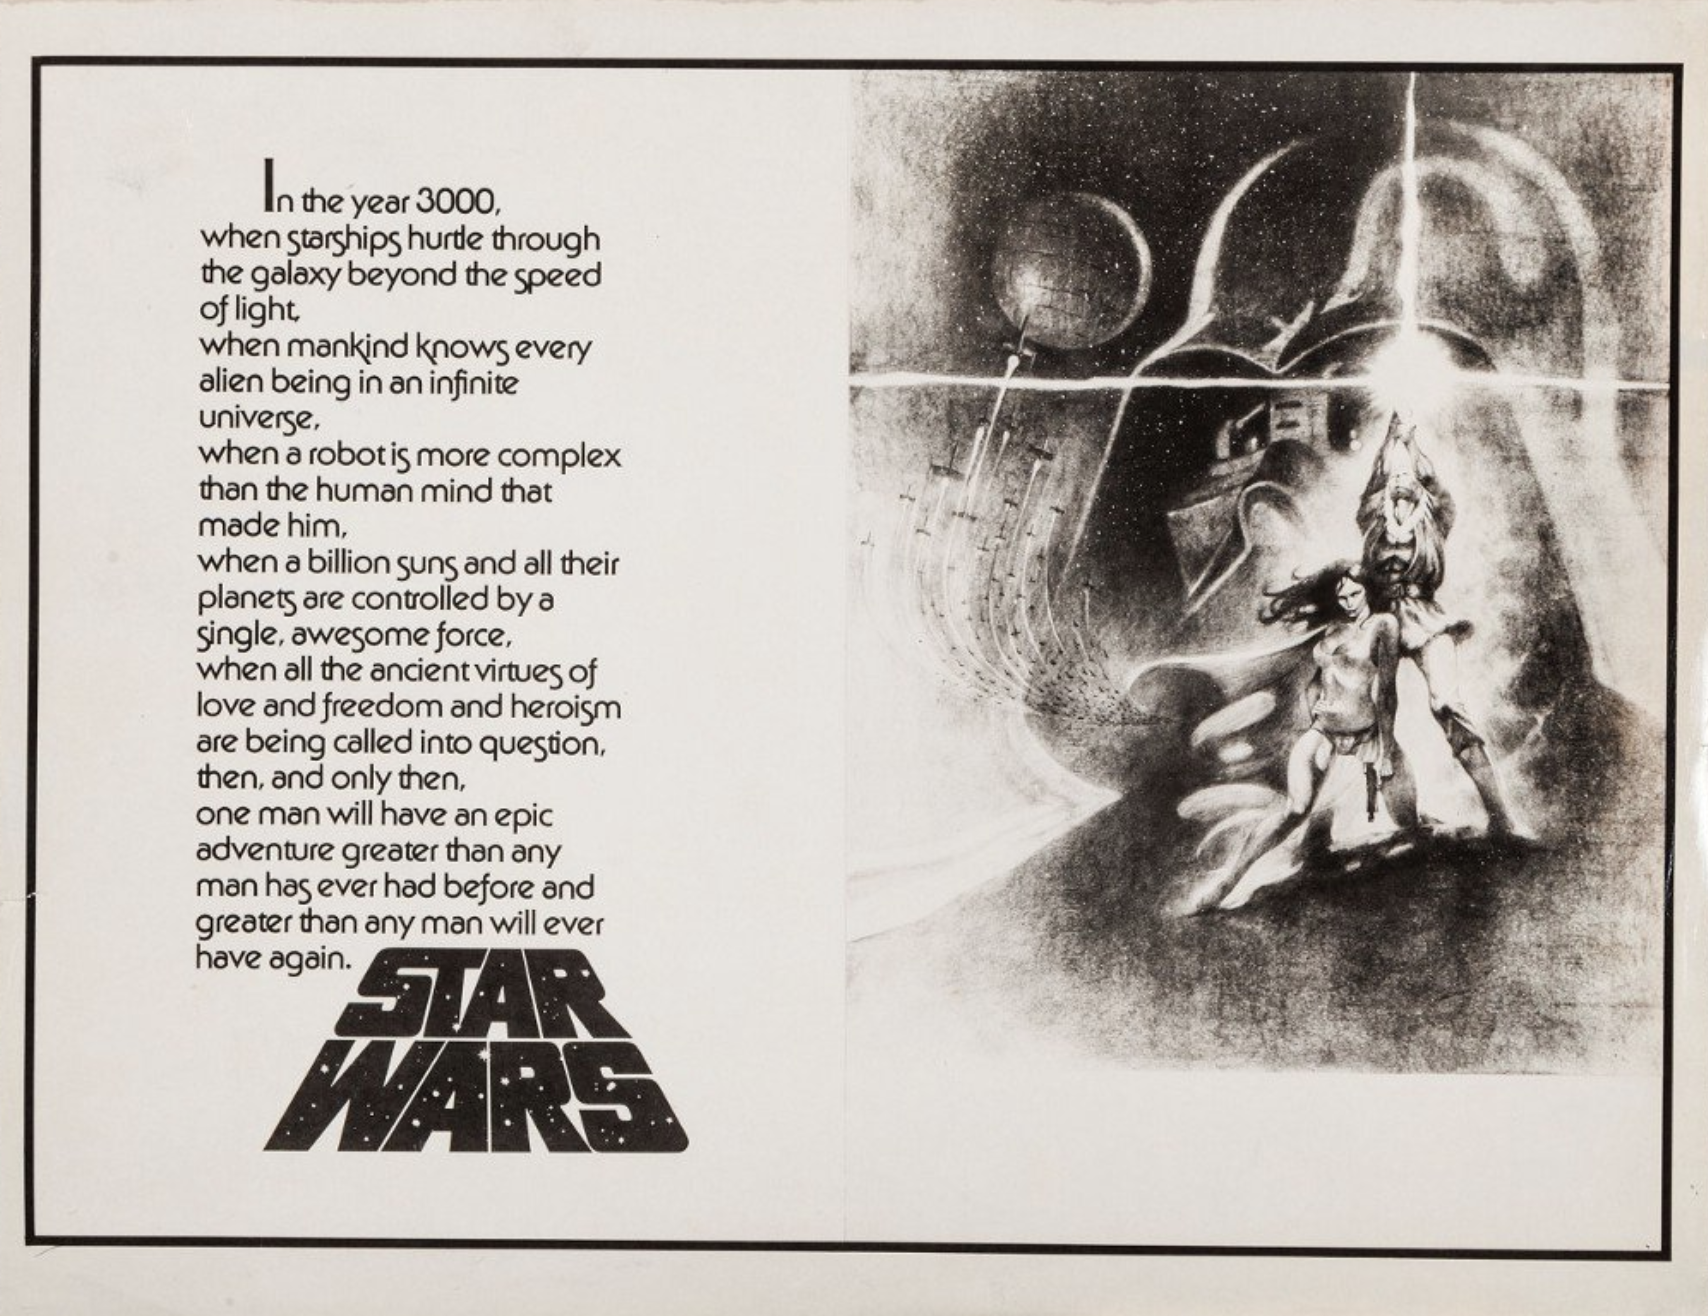 mark-hamill-shares-some-very-early-poster-concepts-for-star-wars-that-tried-to-explain-the-film3